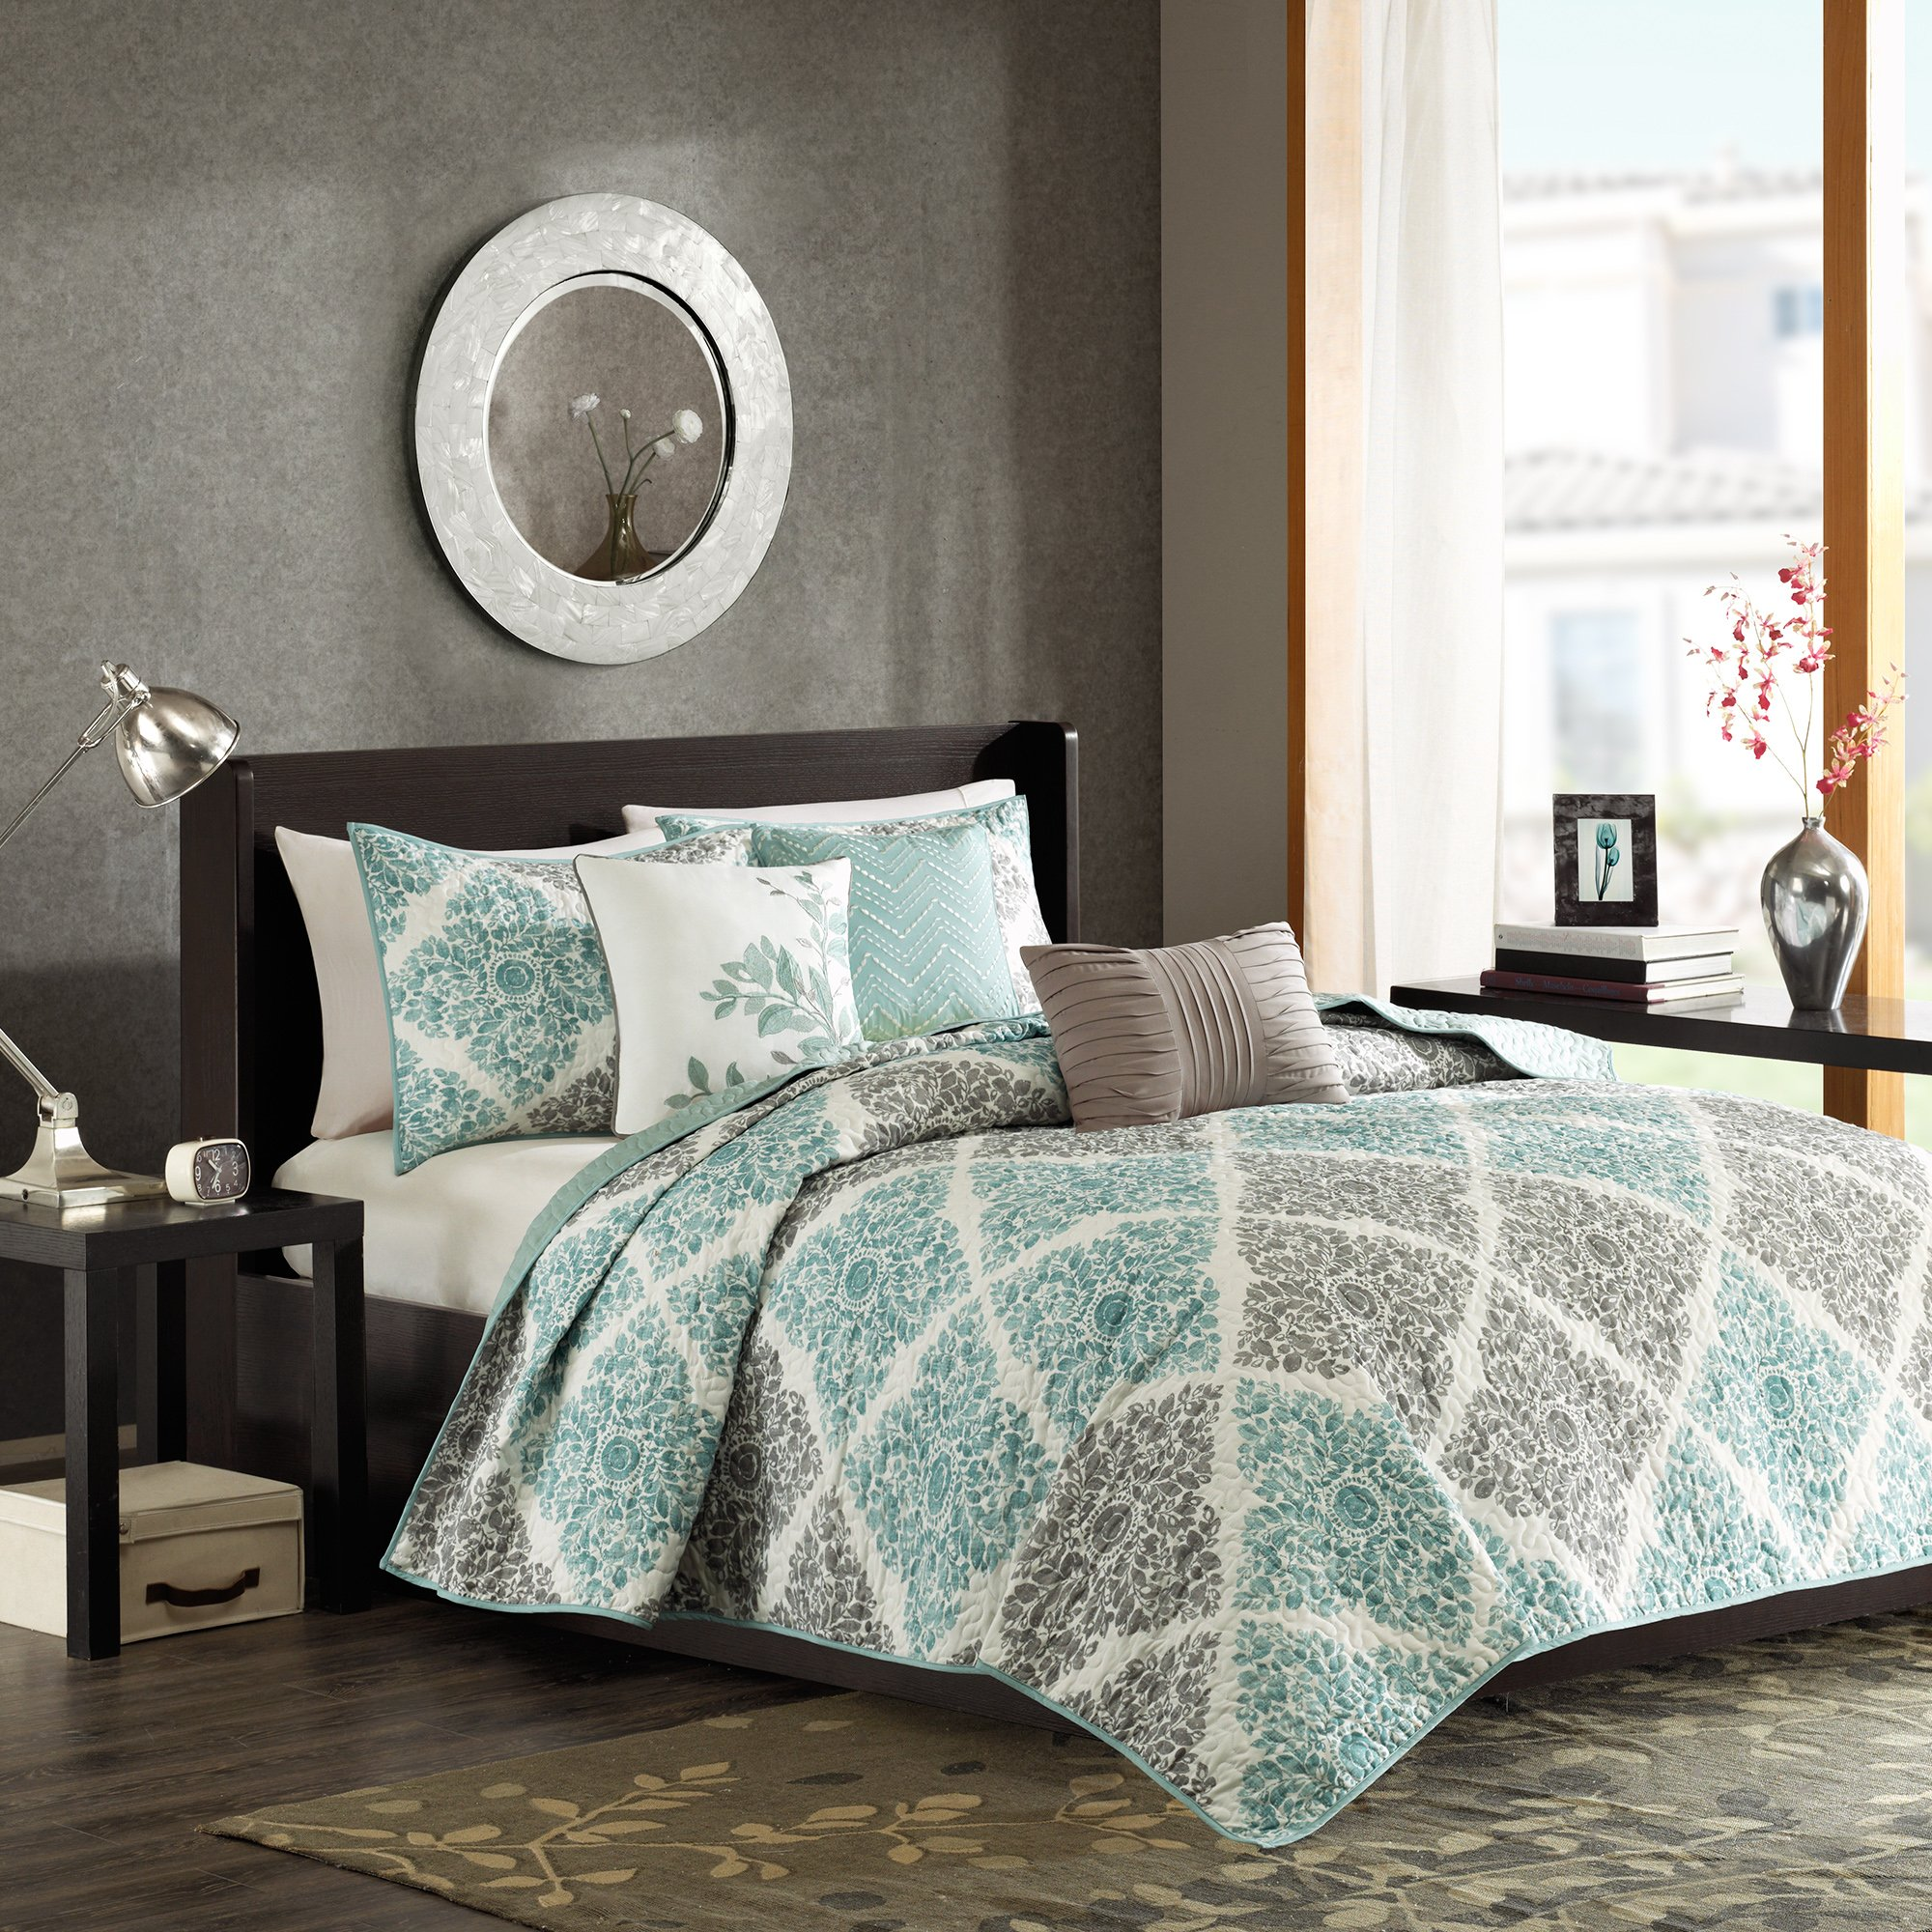 image quilt reyes loading bedding quilted set is ebay bedspread home itm essence coverlet